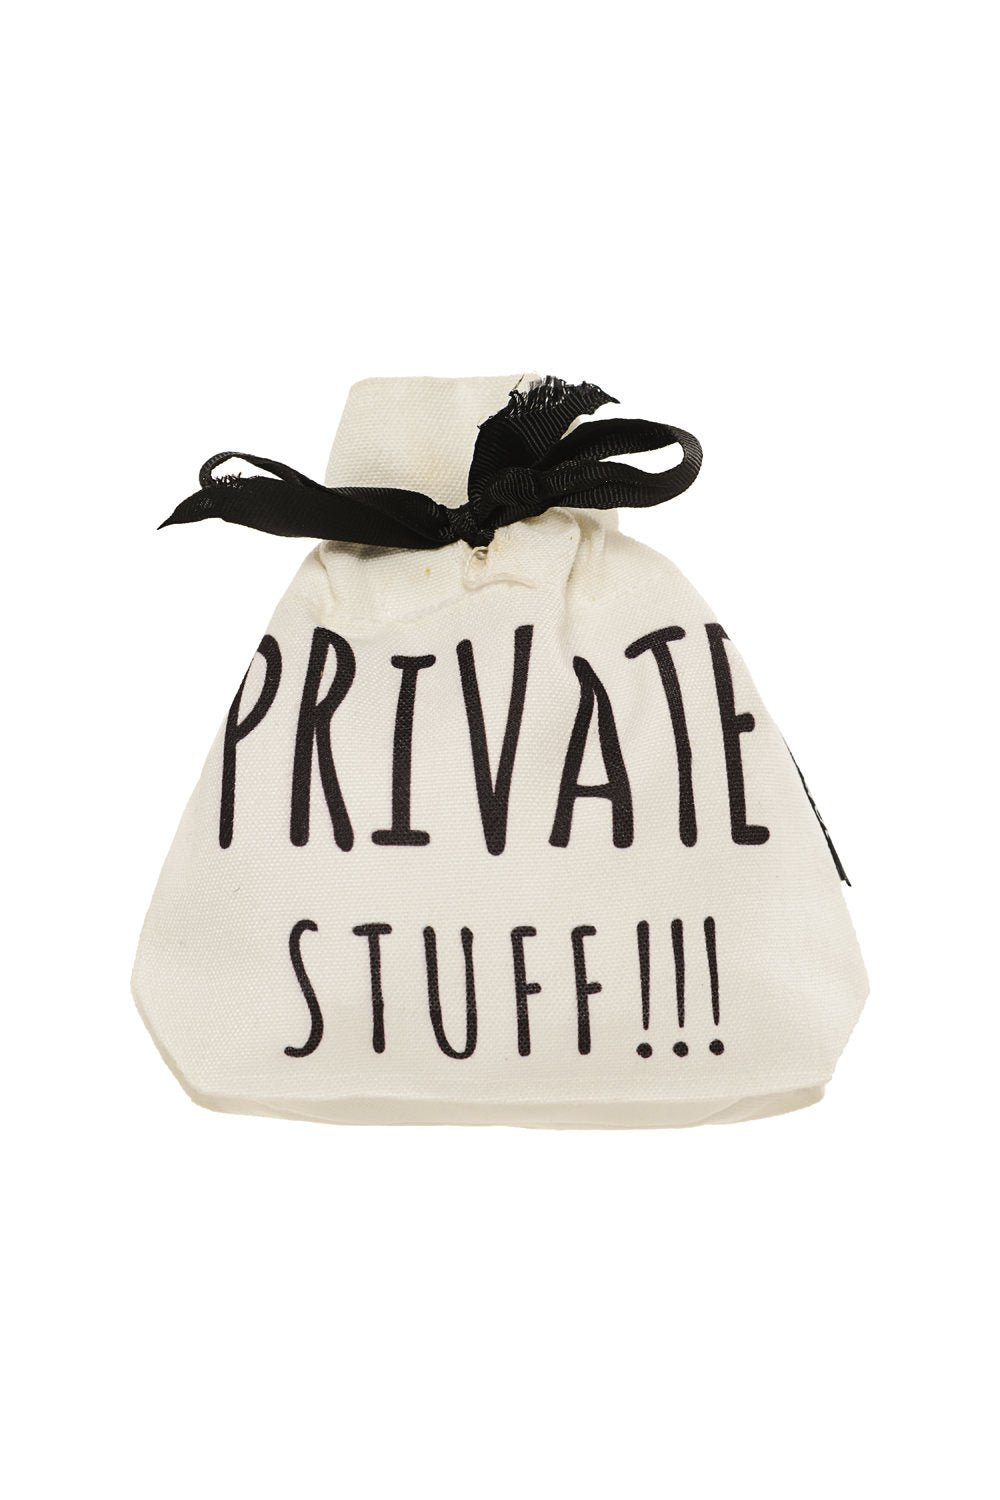 Private Bag